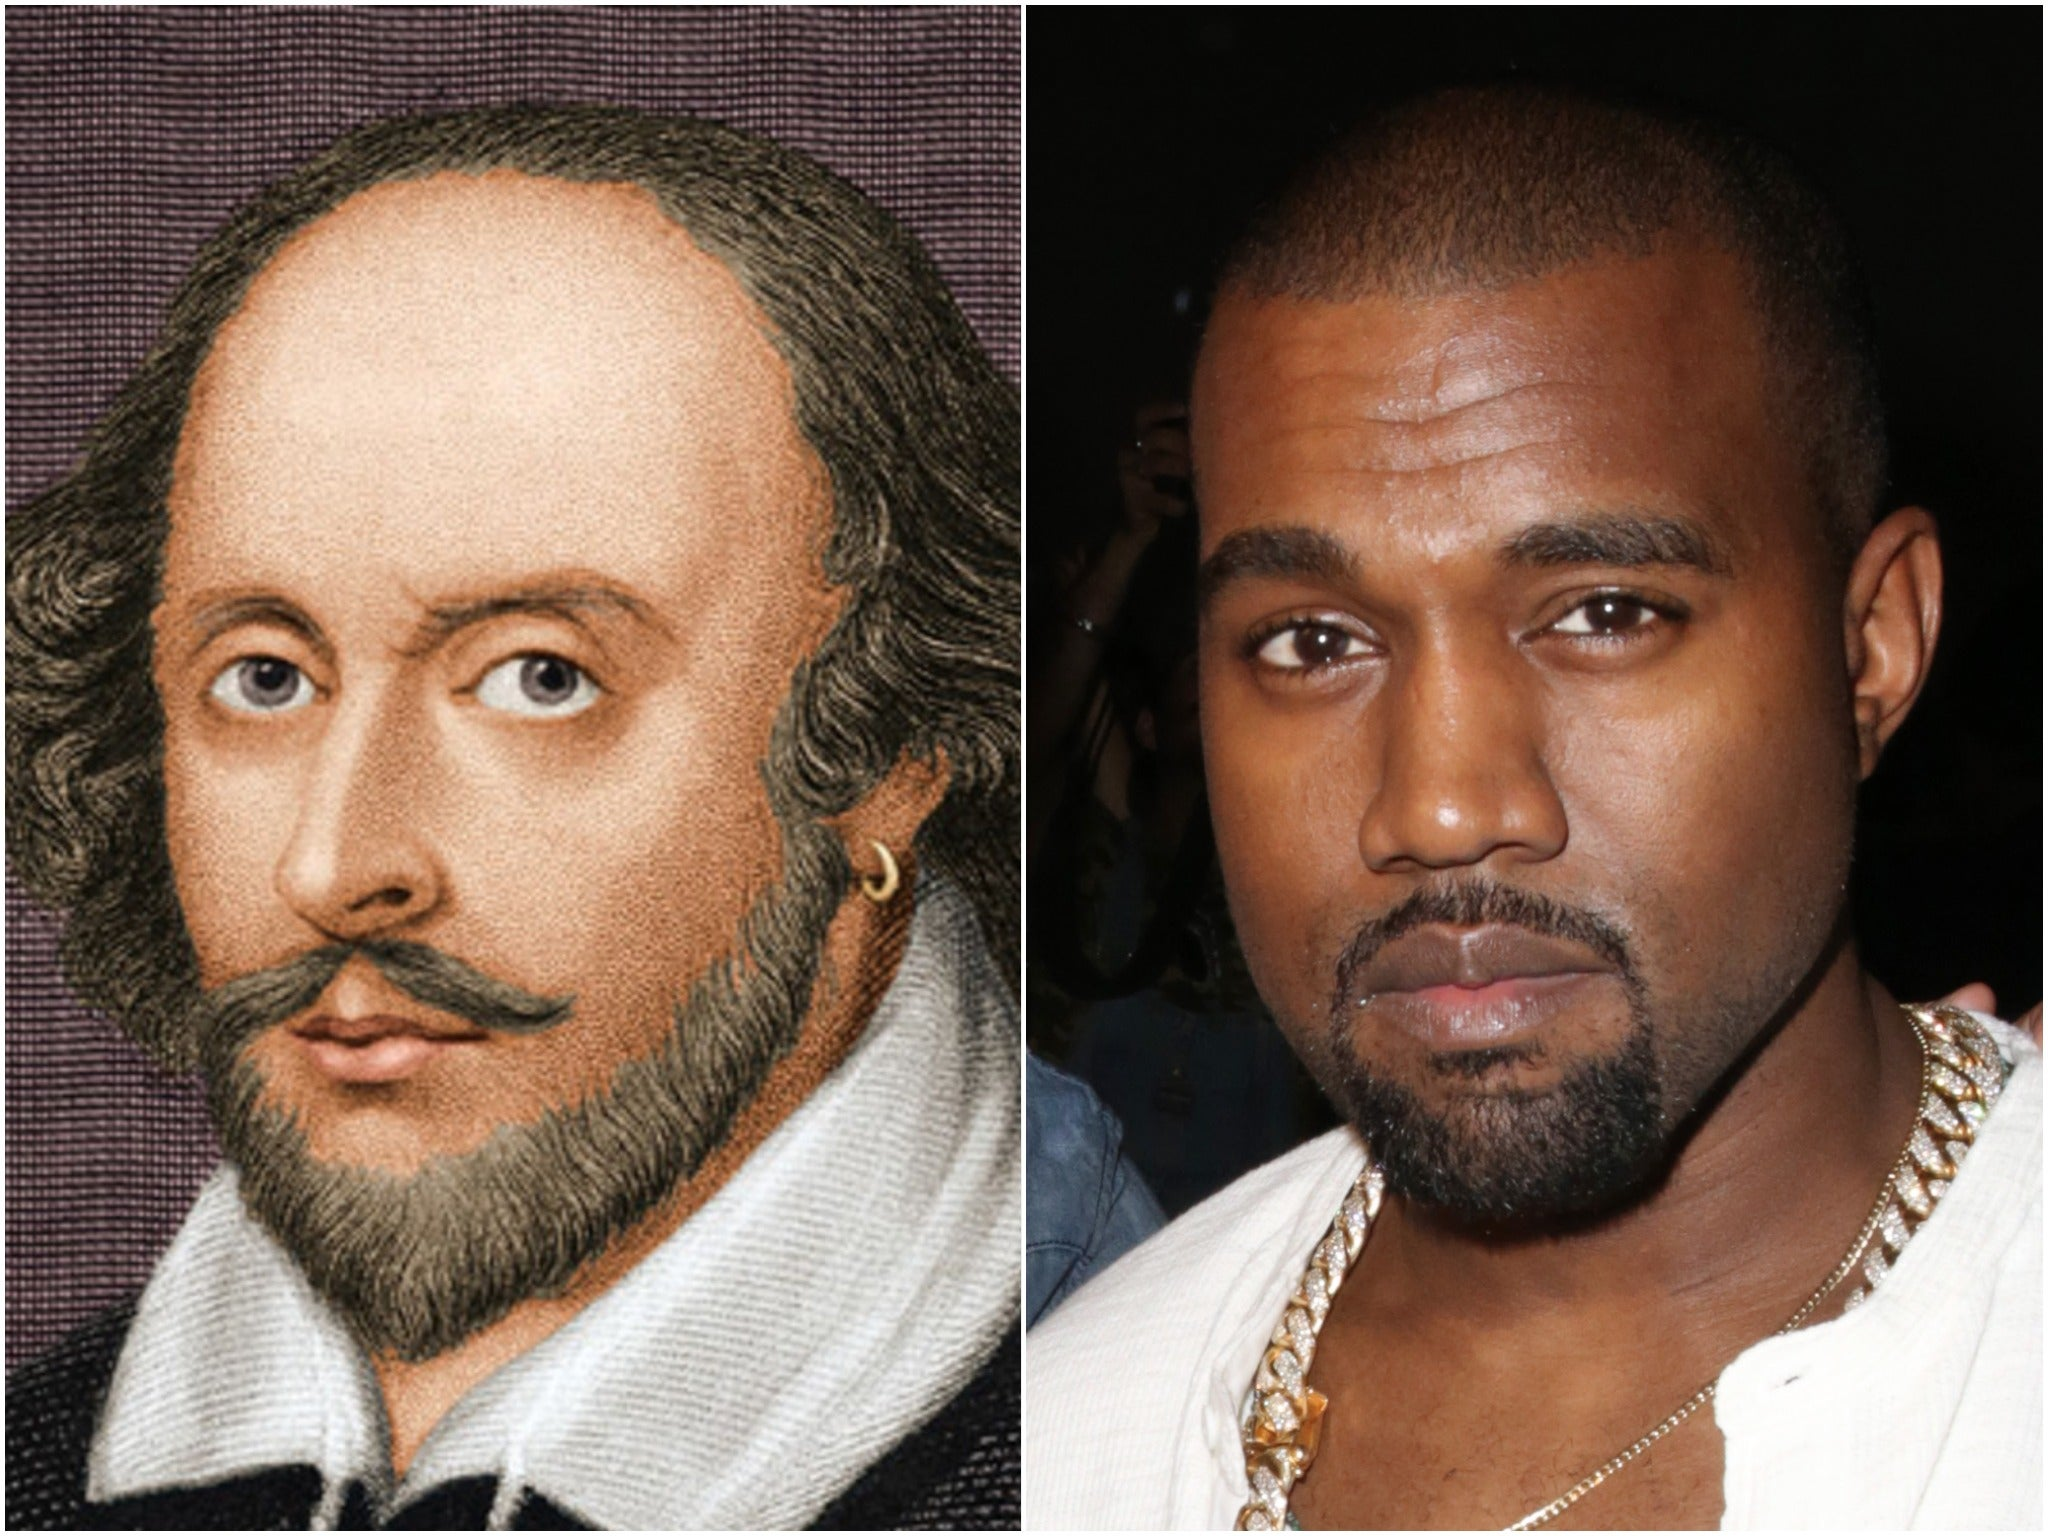 Kanye West's Wiz Khalifa tweets read in the style of a Shakespearean tragedy